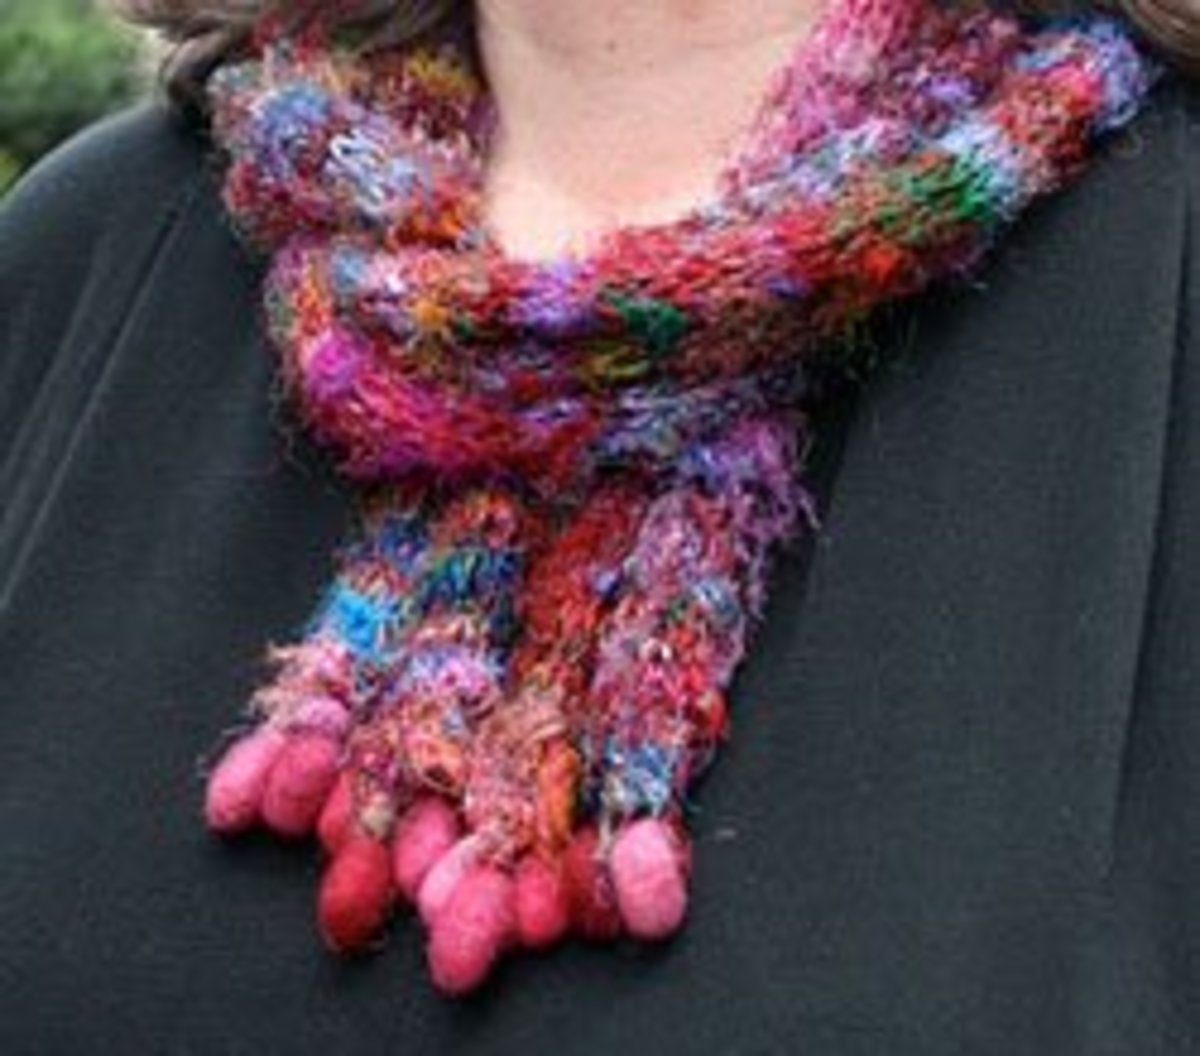 An unusual scarf, knitted in rounds, with dangly felted balls on the end.